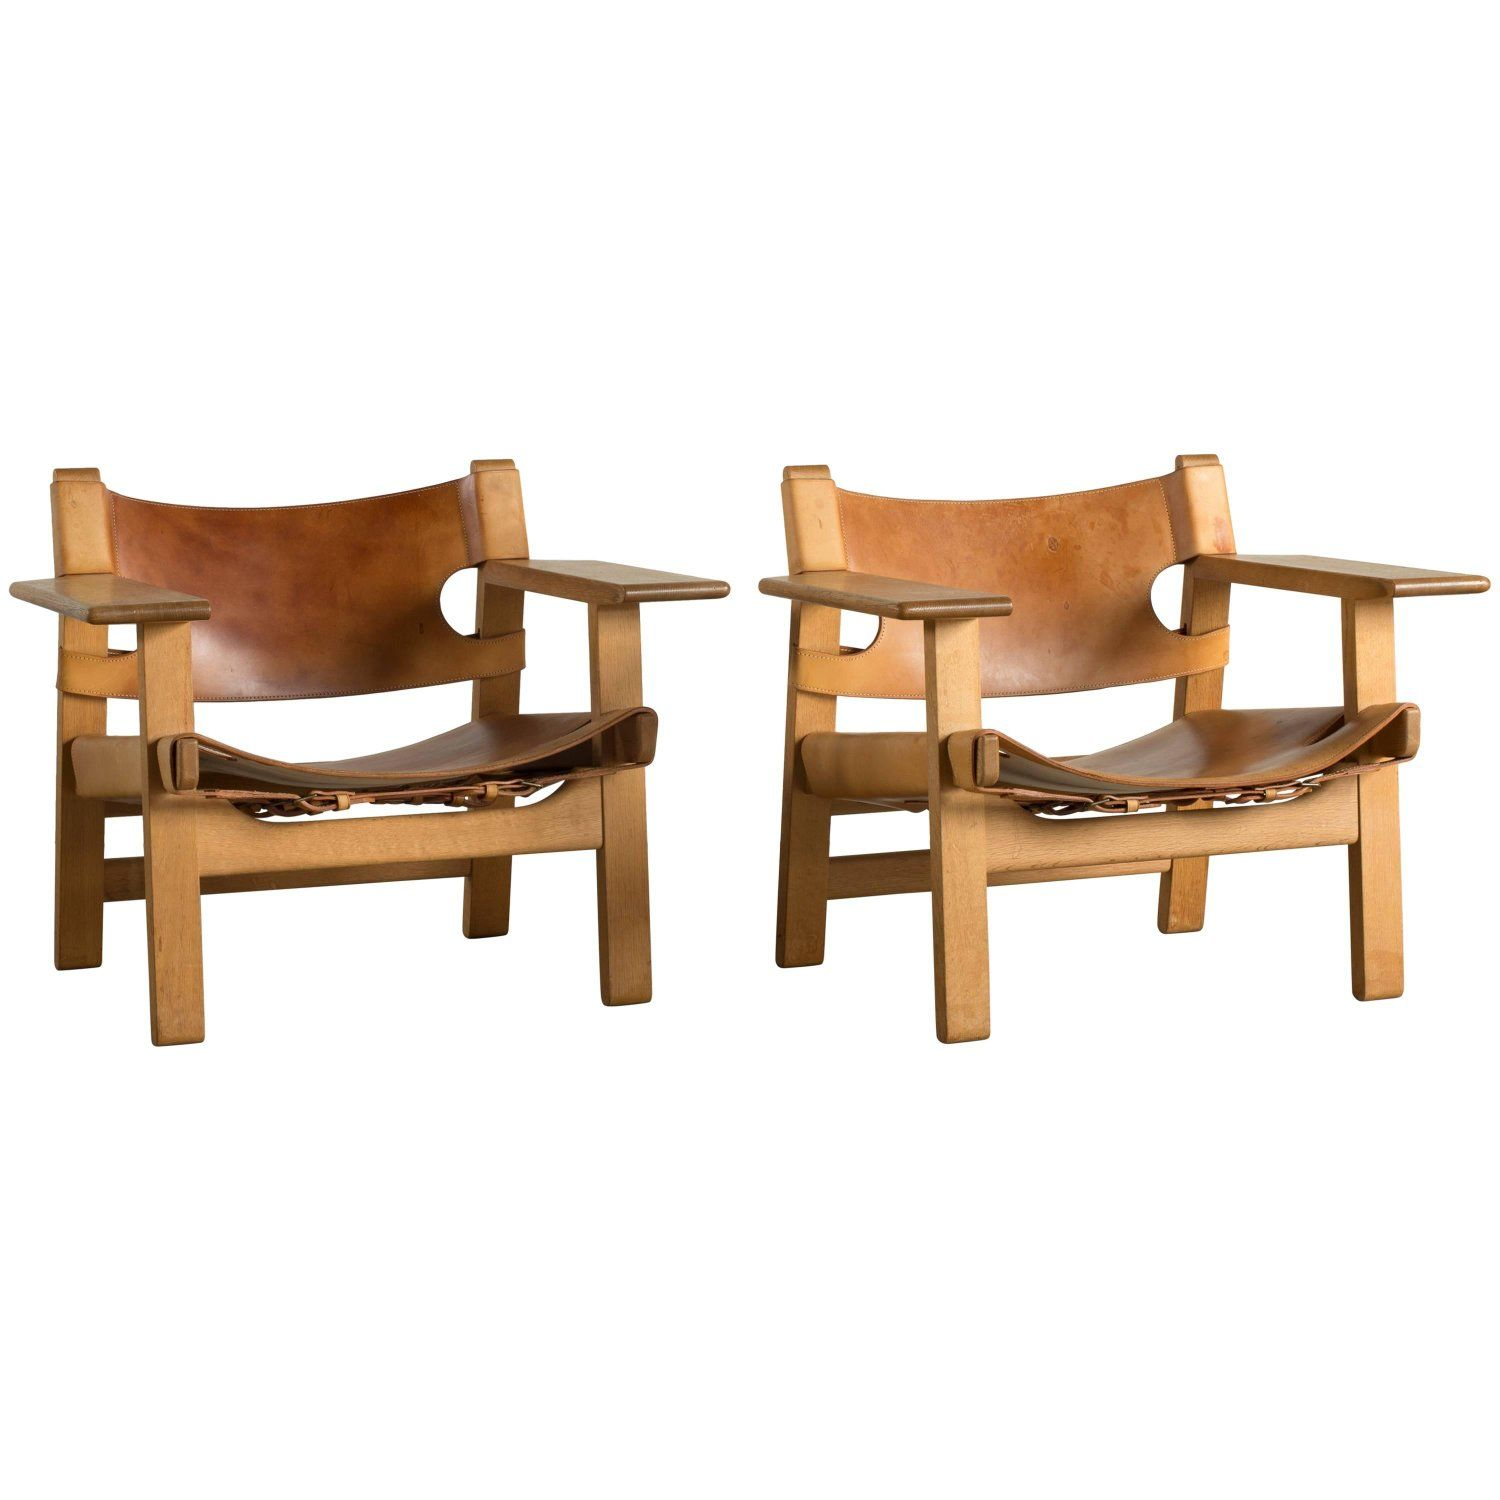 Pair Of Borge Mogensen Spanish Chairs For Fredericia Furniture My 1stdibs Favorites Furniture Chair Armchair